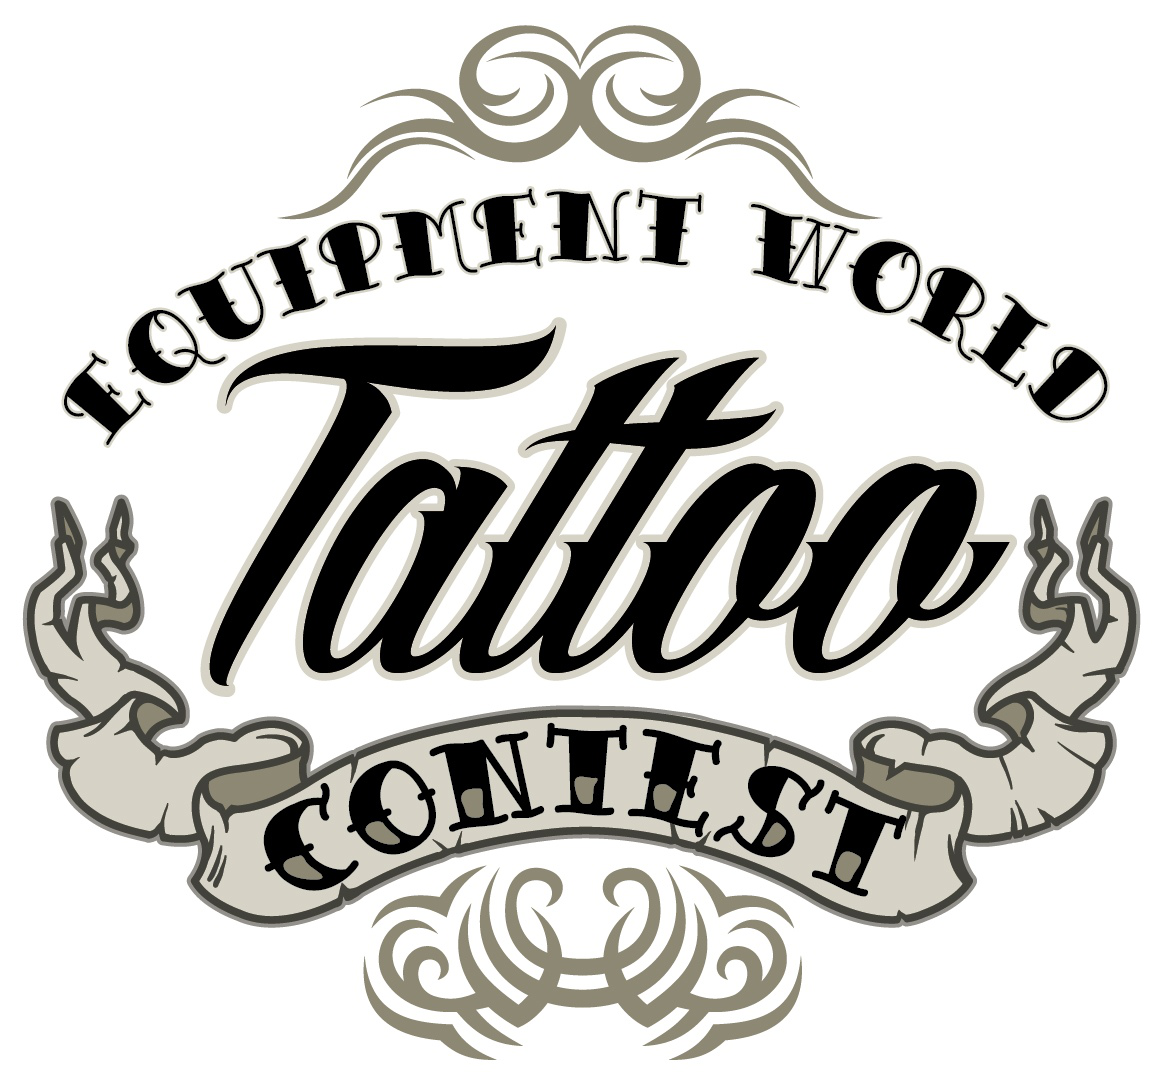 Equipment world construction tattoo contest for World wide tattoo supply